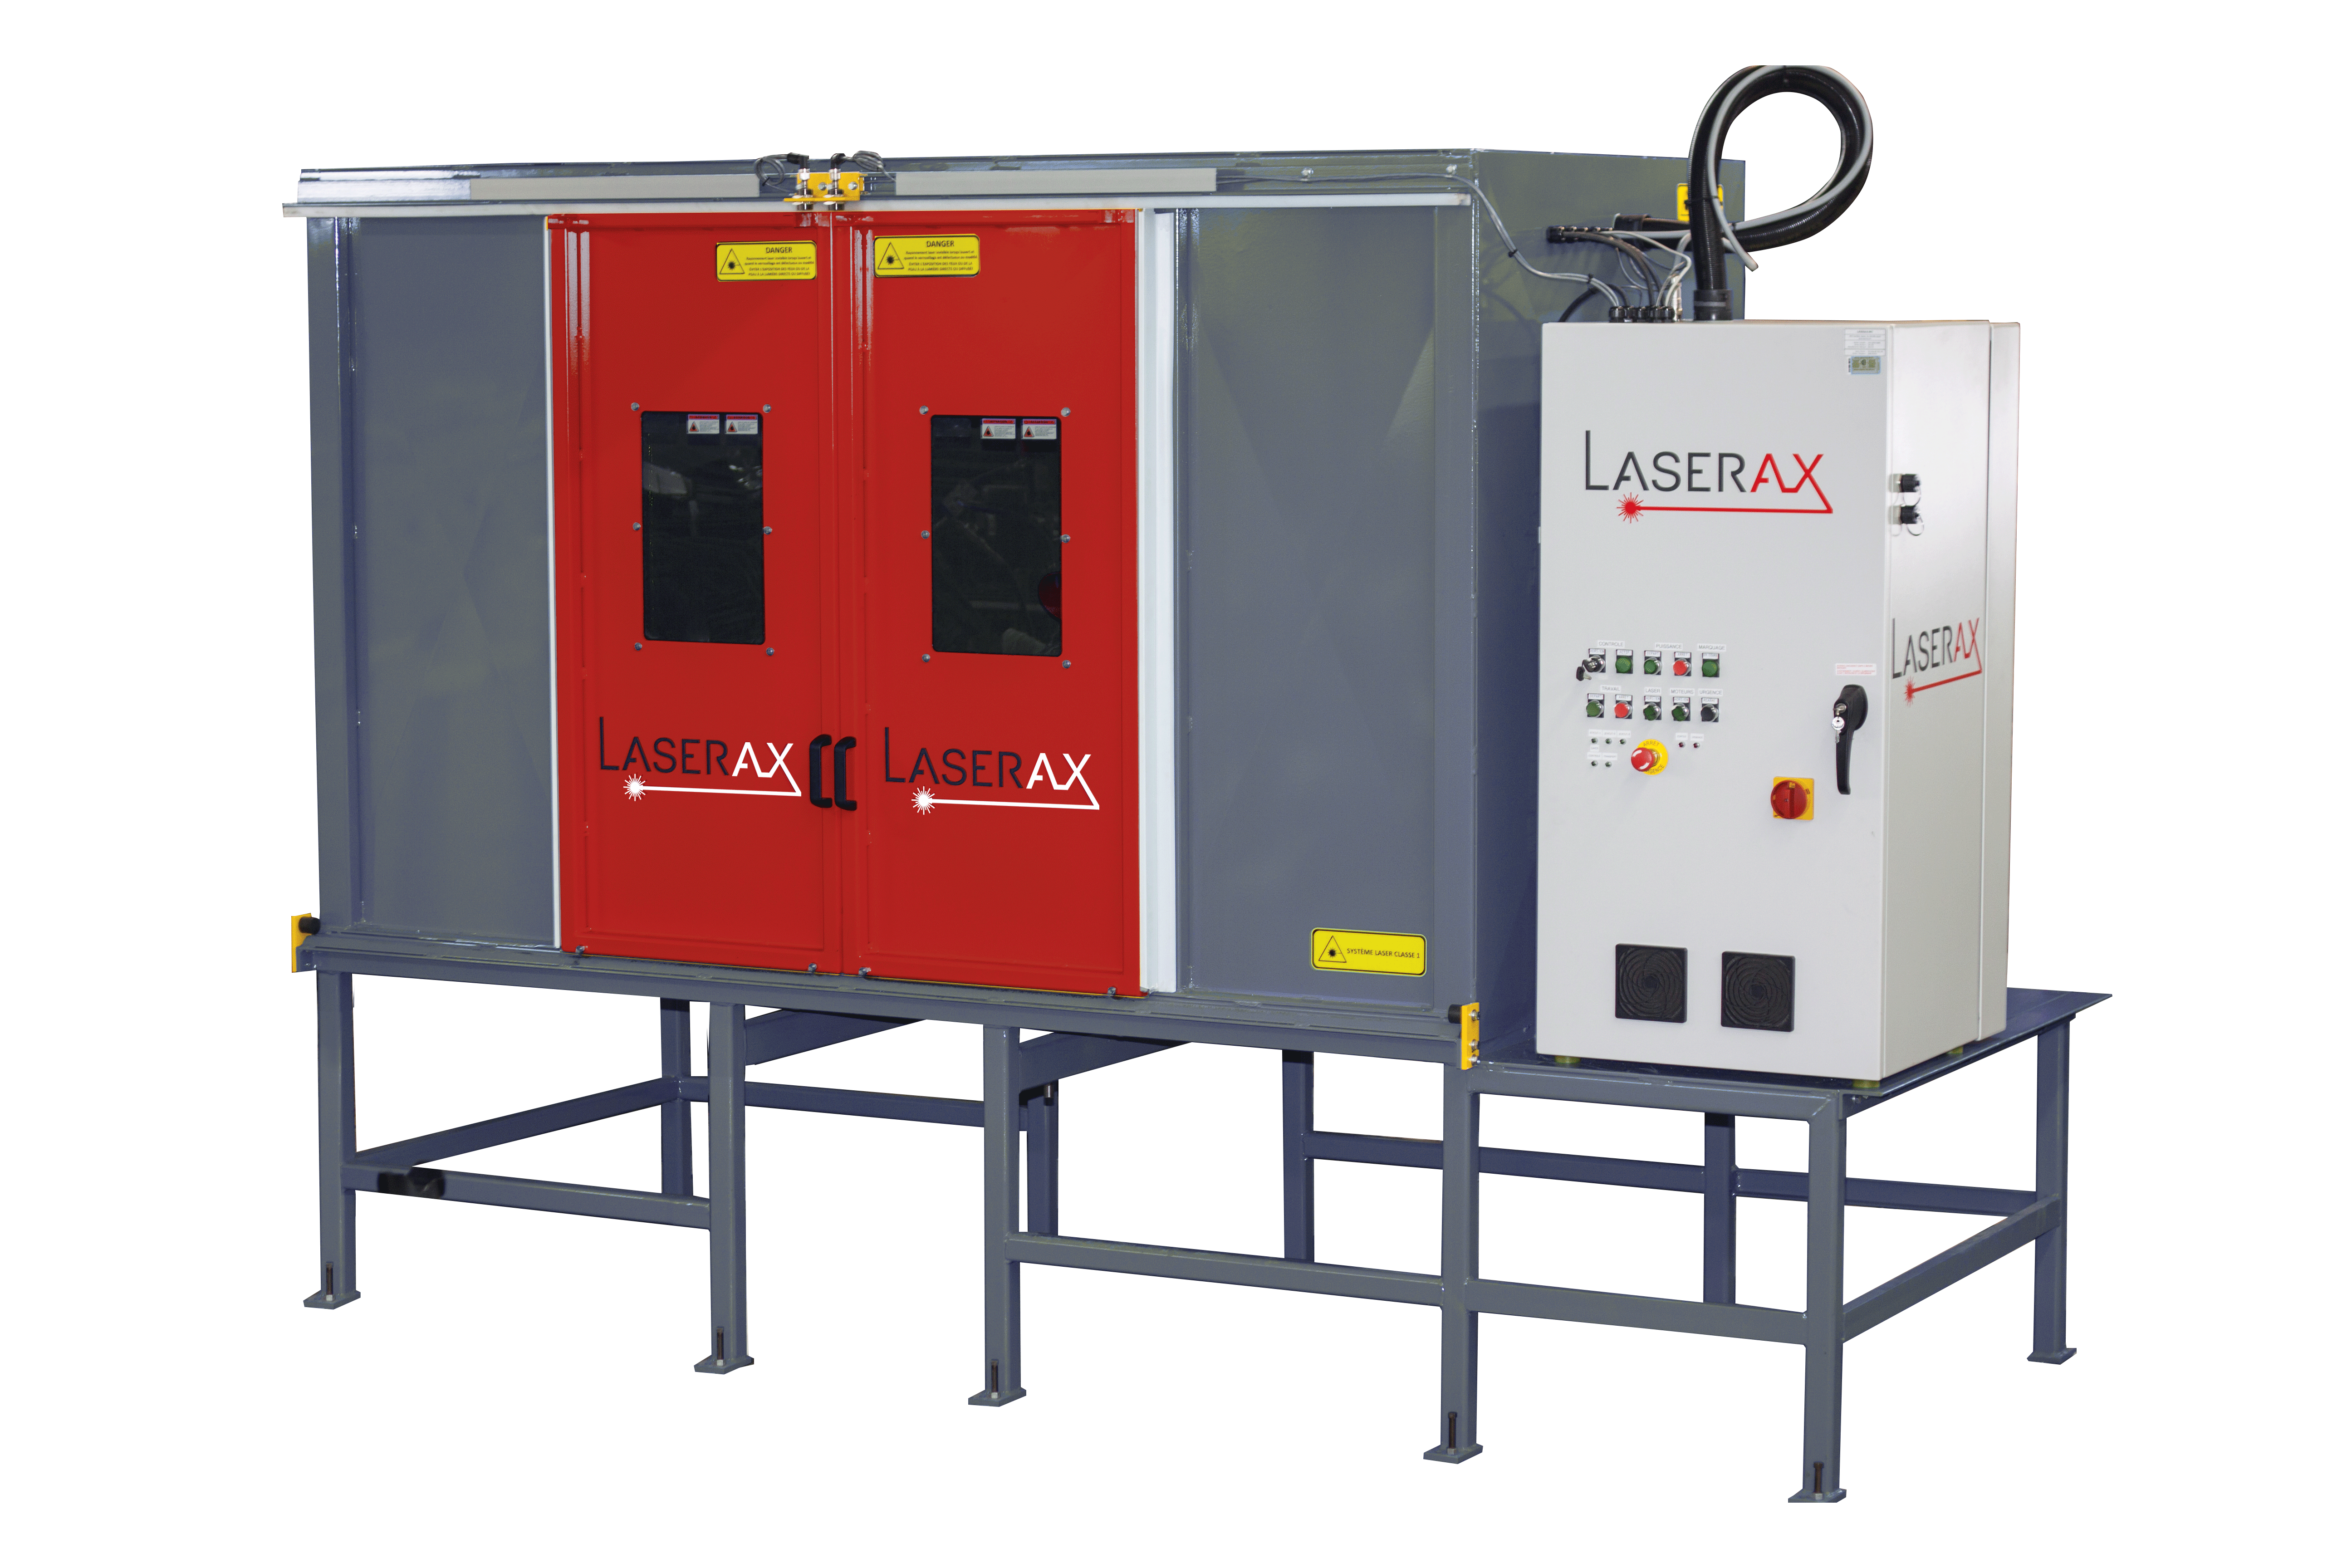 Image: Laserax's Standalone Safety Enclosure